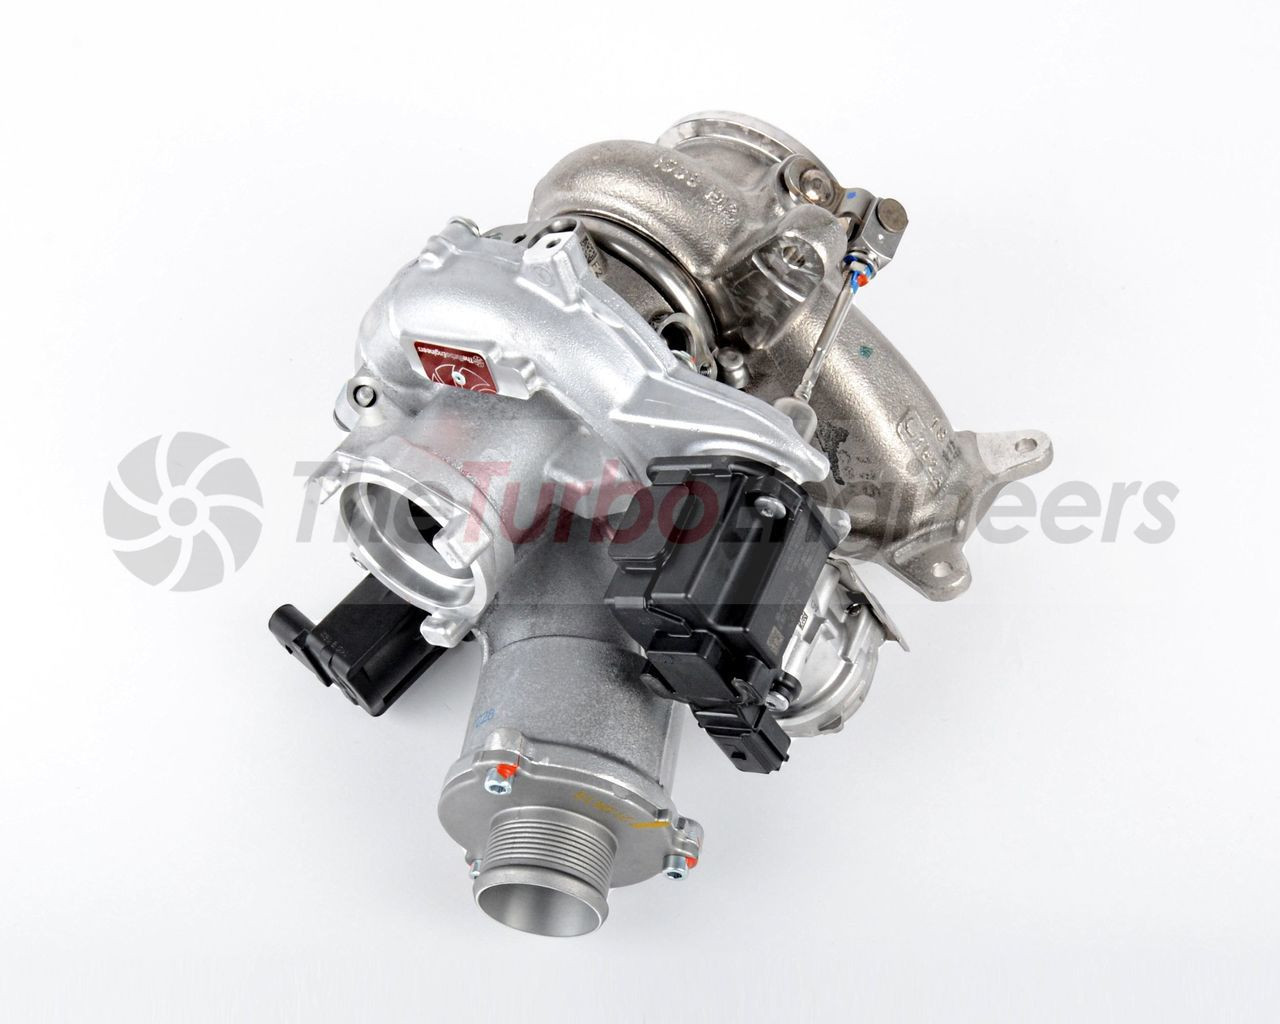 The Turbo Engineers >> The Turbo Engineers Tte535 Hybrid Is38 Turbo Charger Exchange